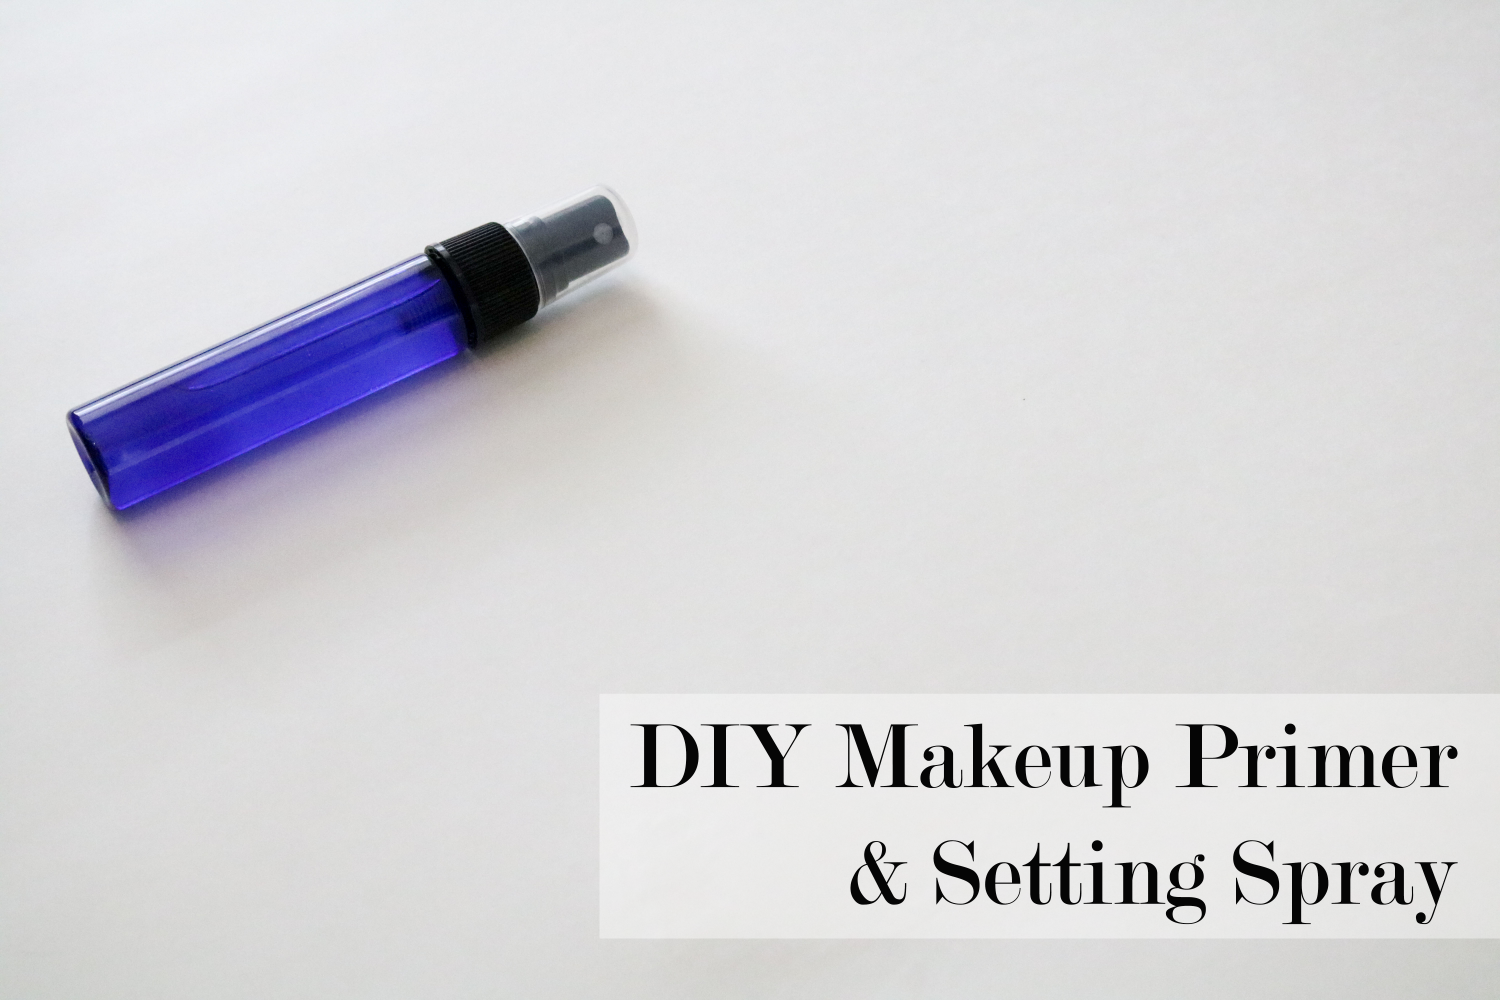 DIY All Natural Makeup Primer/Setting Spray Makeup spray